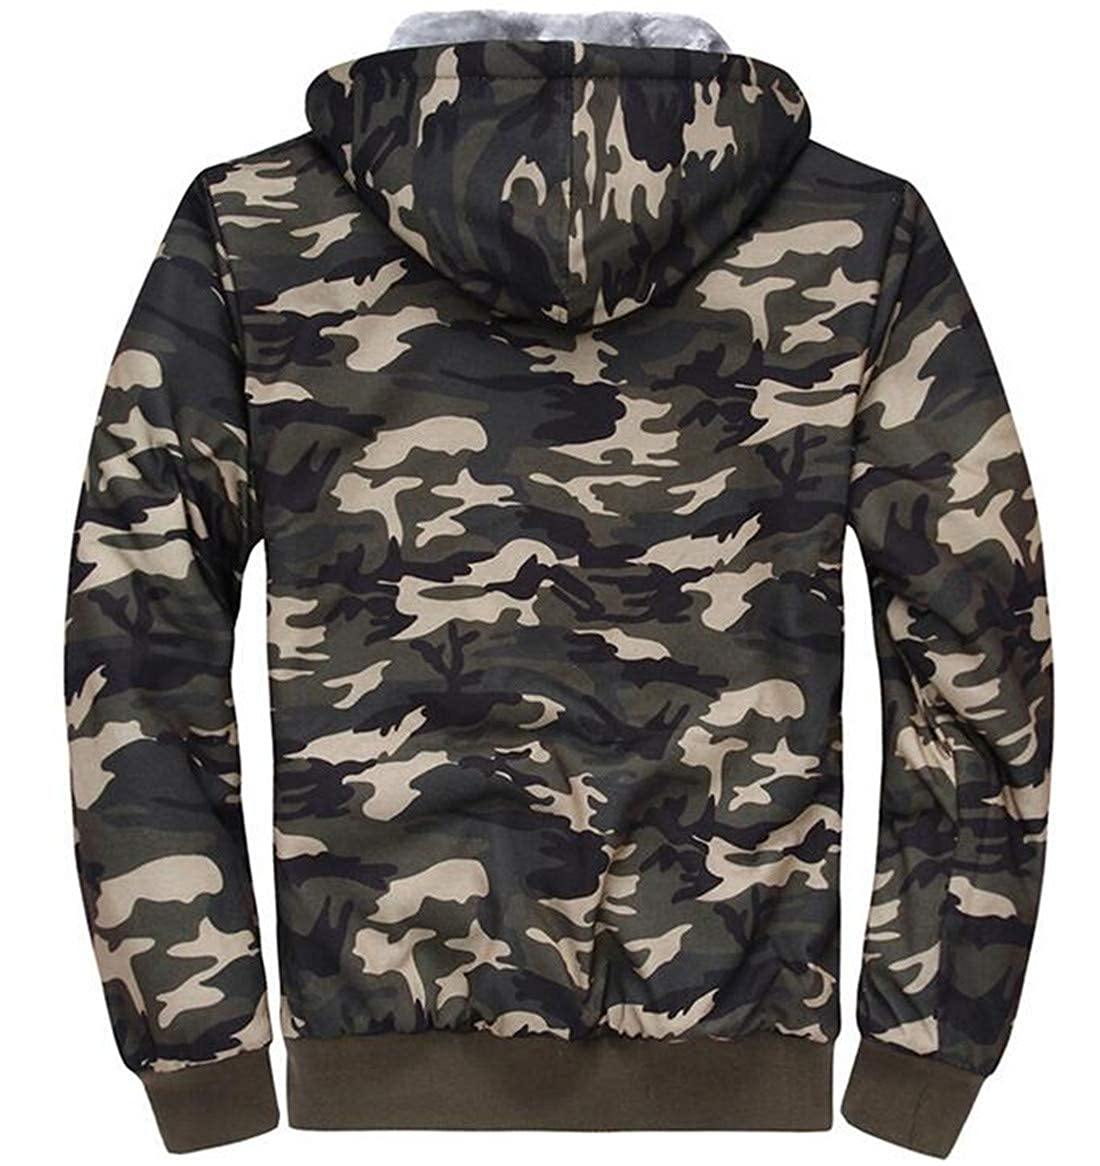 X-Future Men Coat Hooded Zip Front Fleece Lined Outwear Camo Print Sweatshirt